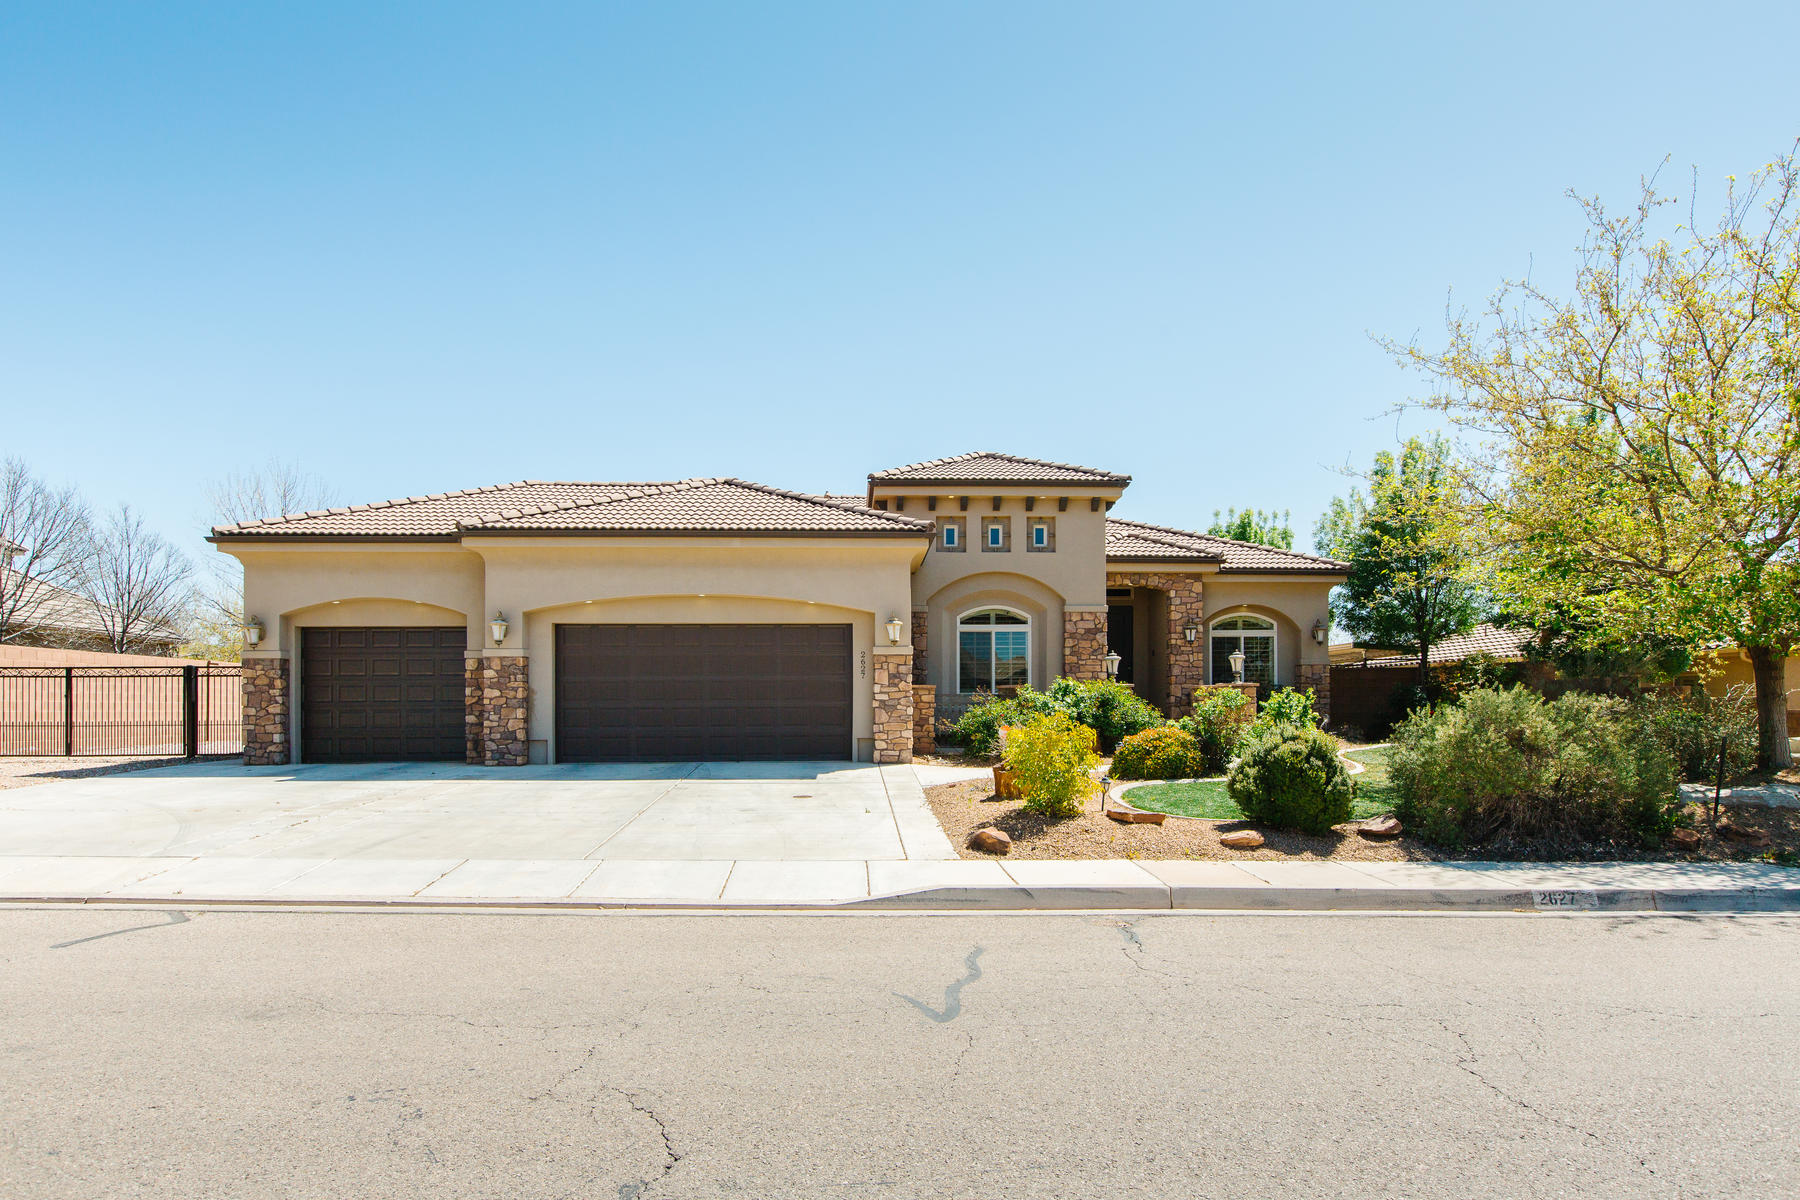 Single Family Homes for Sale at A Rare Gem 2627 South 2350 East St St. George, Utah 84790 United States